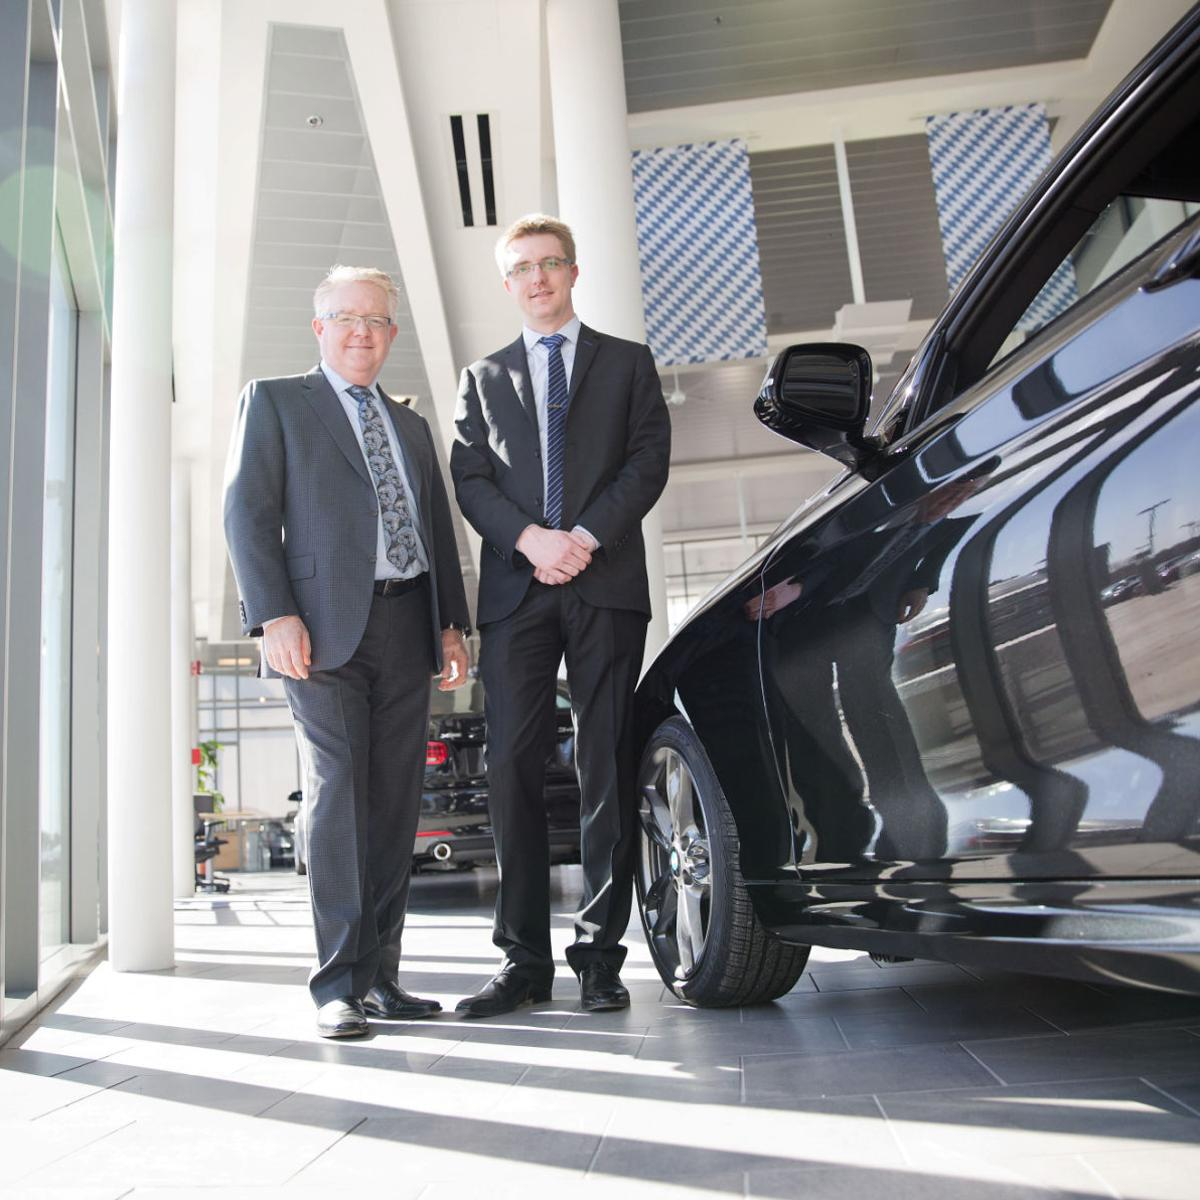 H H Among Dealerships Jumping At Chance To Expand Business